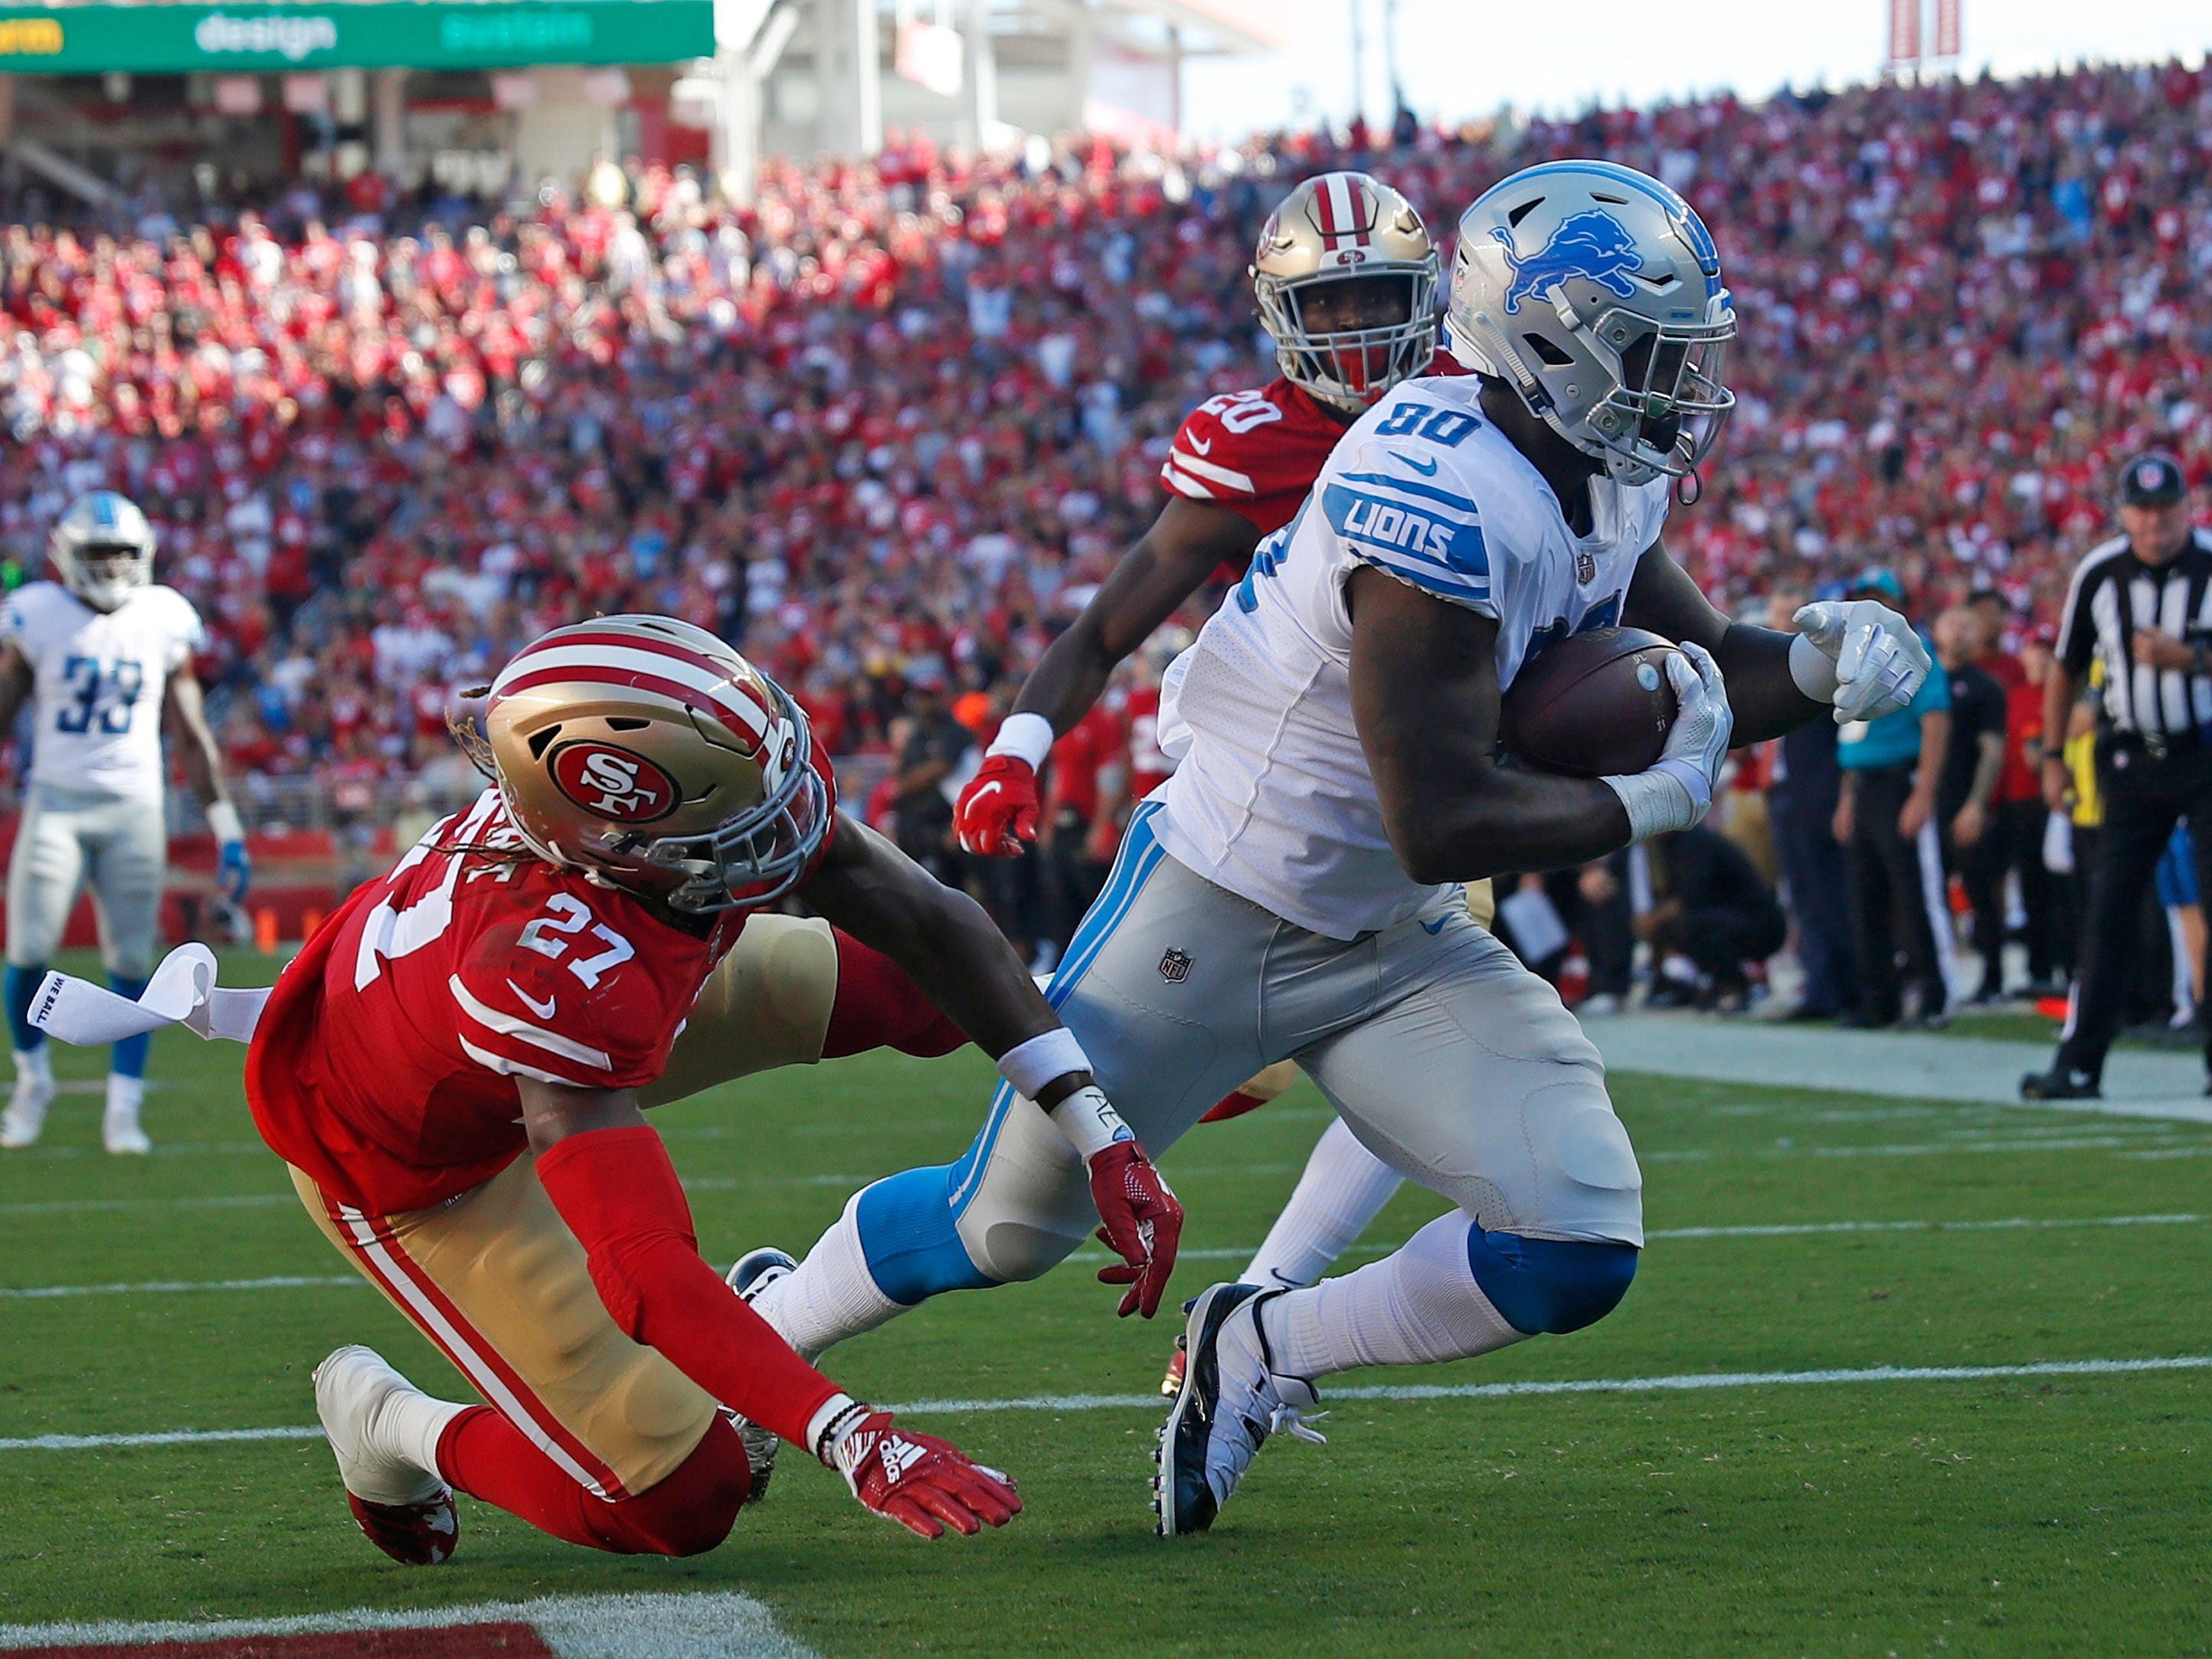 Detroit Lions tight end Michael Roberts scores a touchdown against San Francisco 49ers defensive back Adrian Colbert in the fourth quarter in Santa Clara, Calif., Sunday, Sept. 16, 2018.